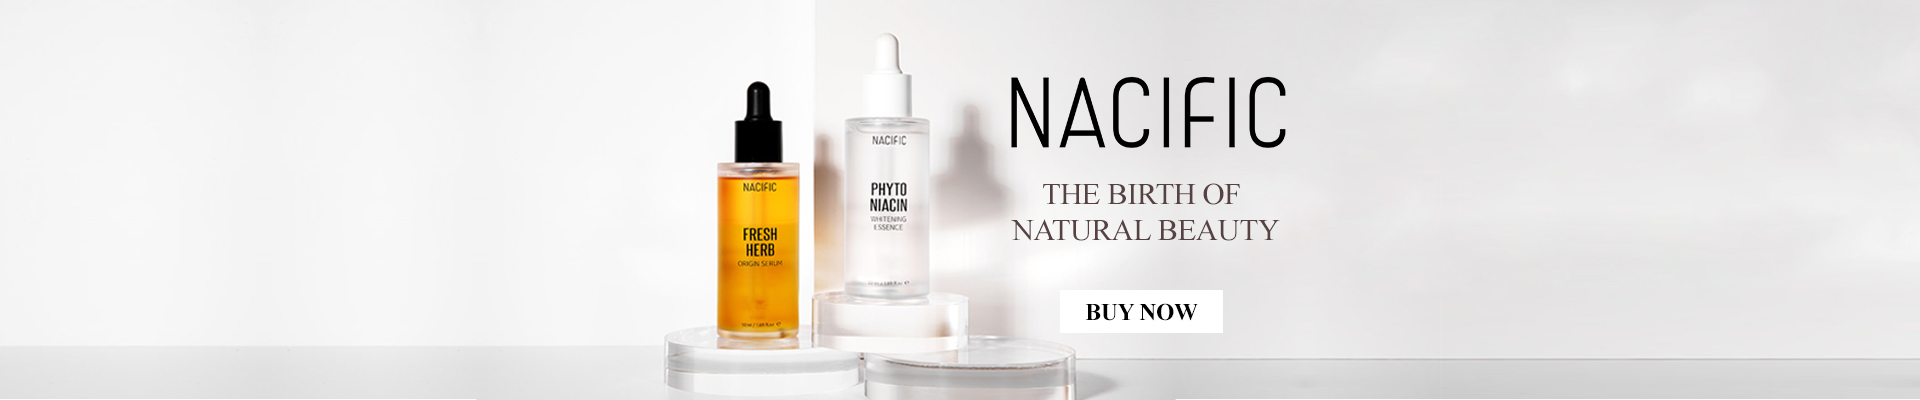 NACIFIC, the birth of natural beauty